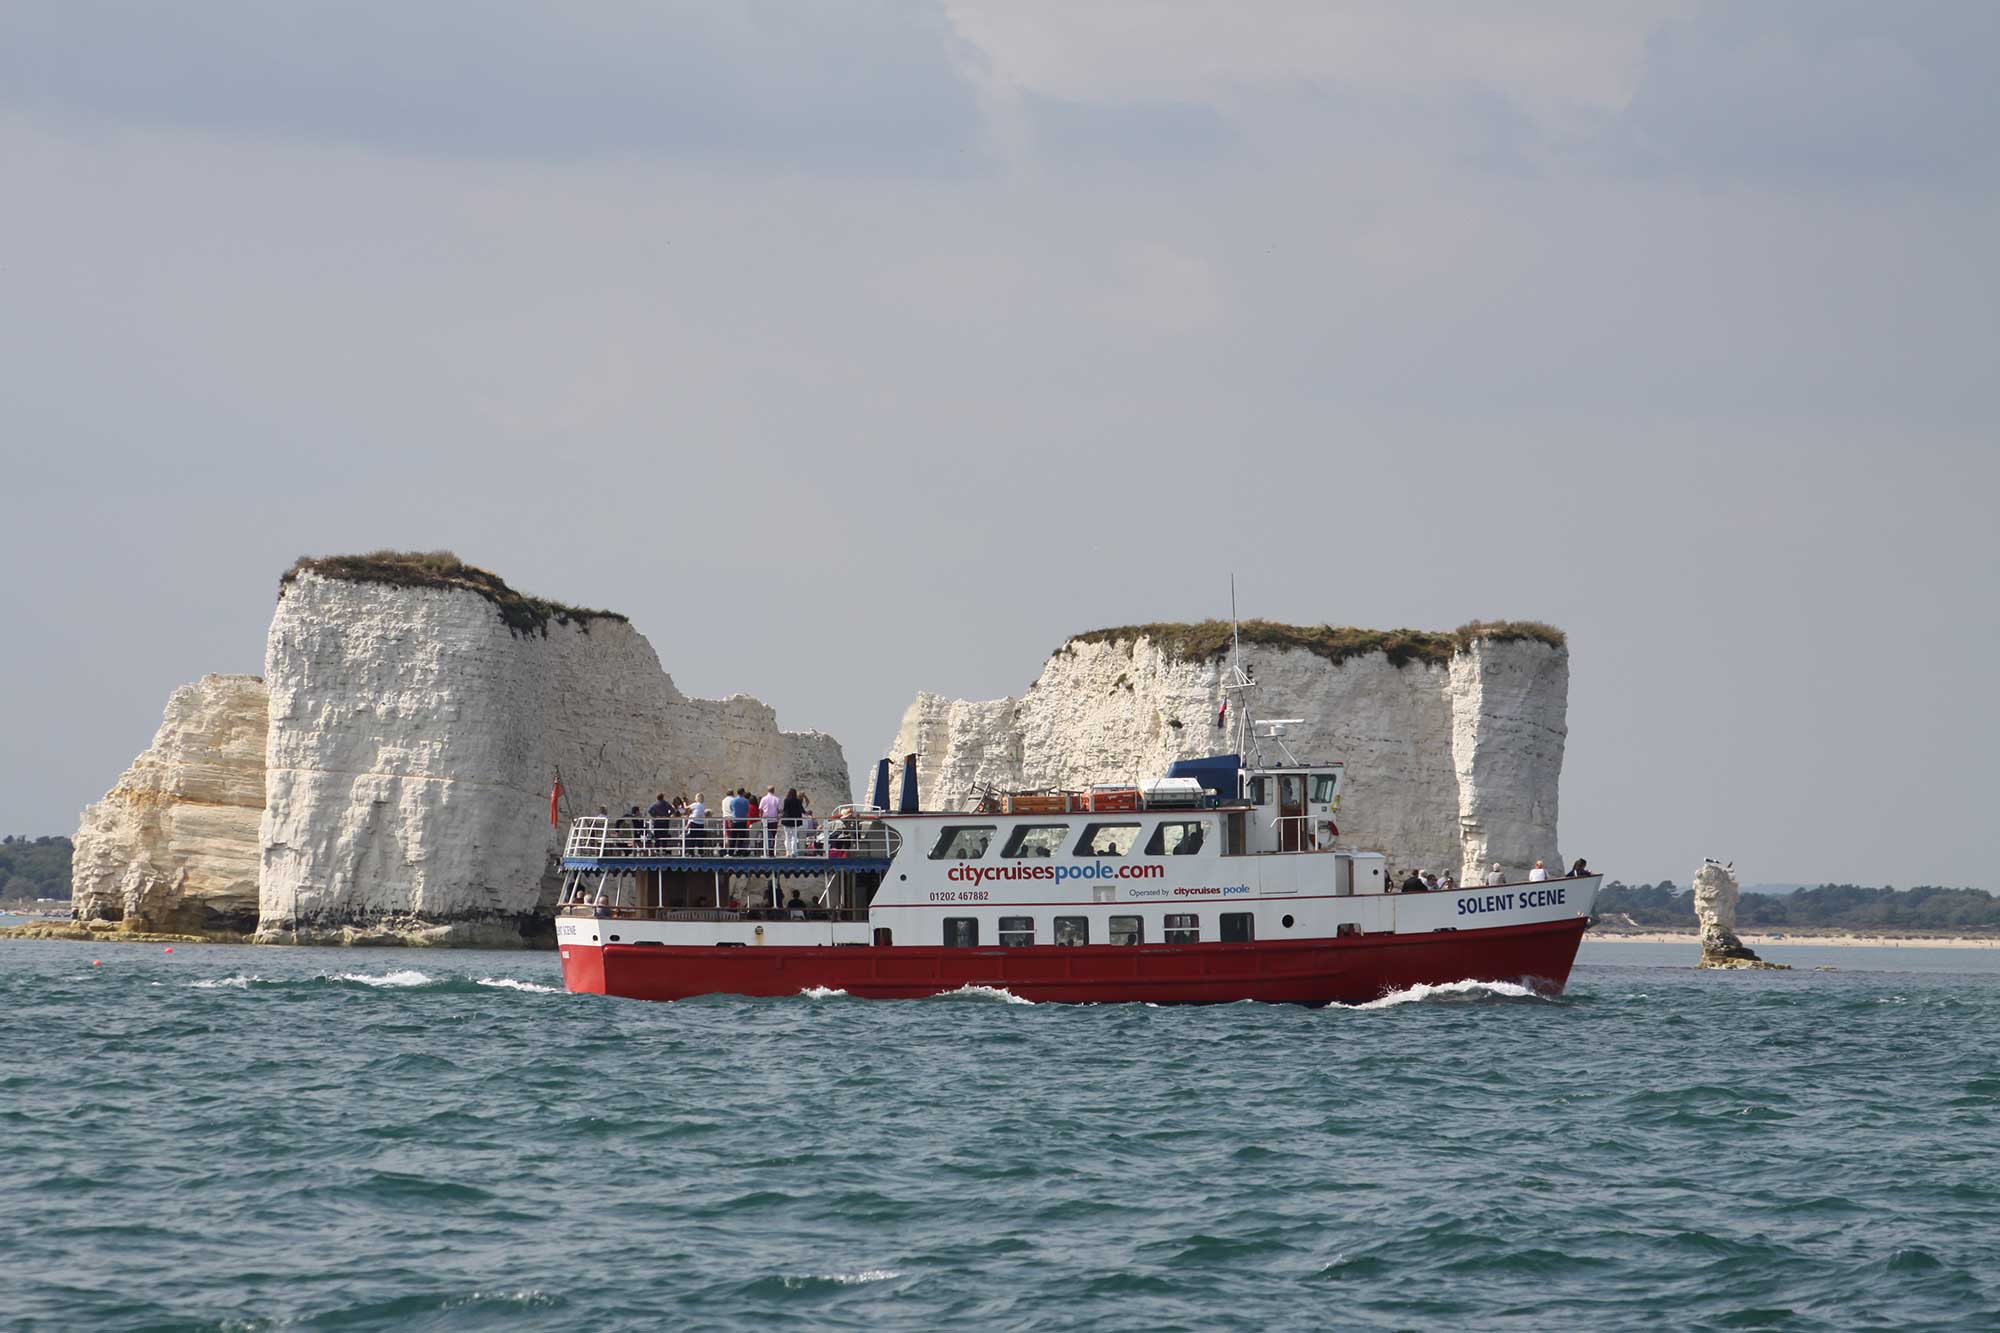 City Cruises Poole - Dorset tourist attraction